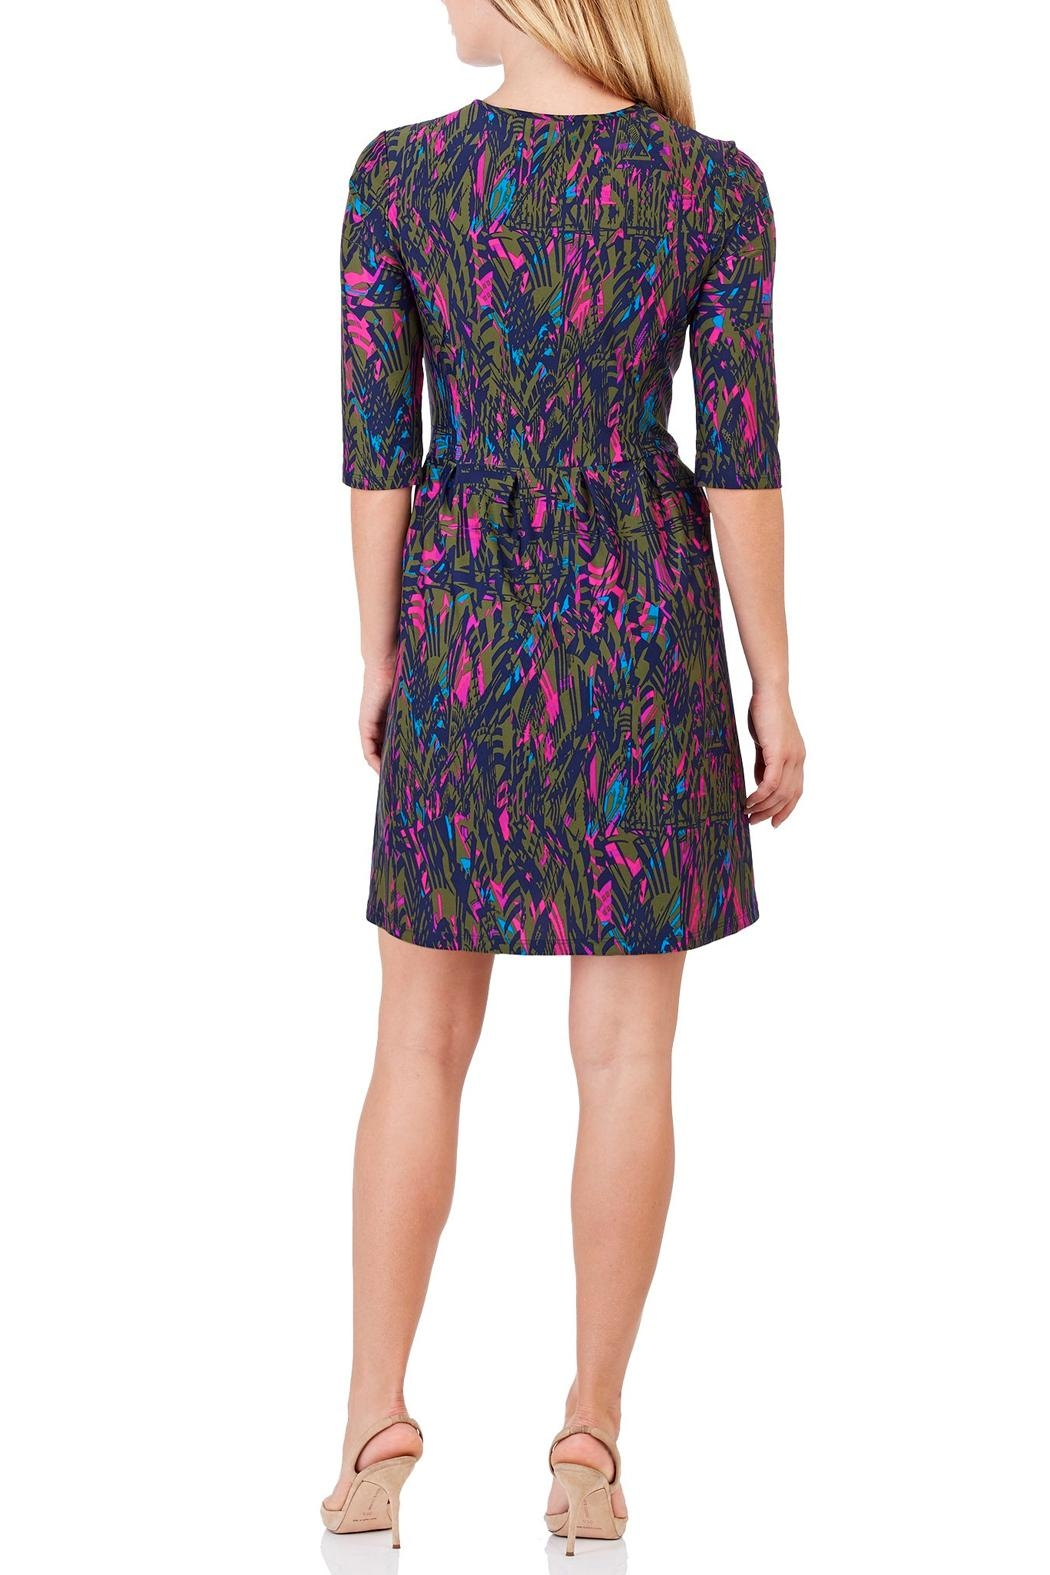 Jude Connally Brynn Fit & Flare Dress - Front Full Image